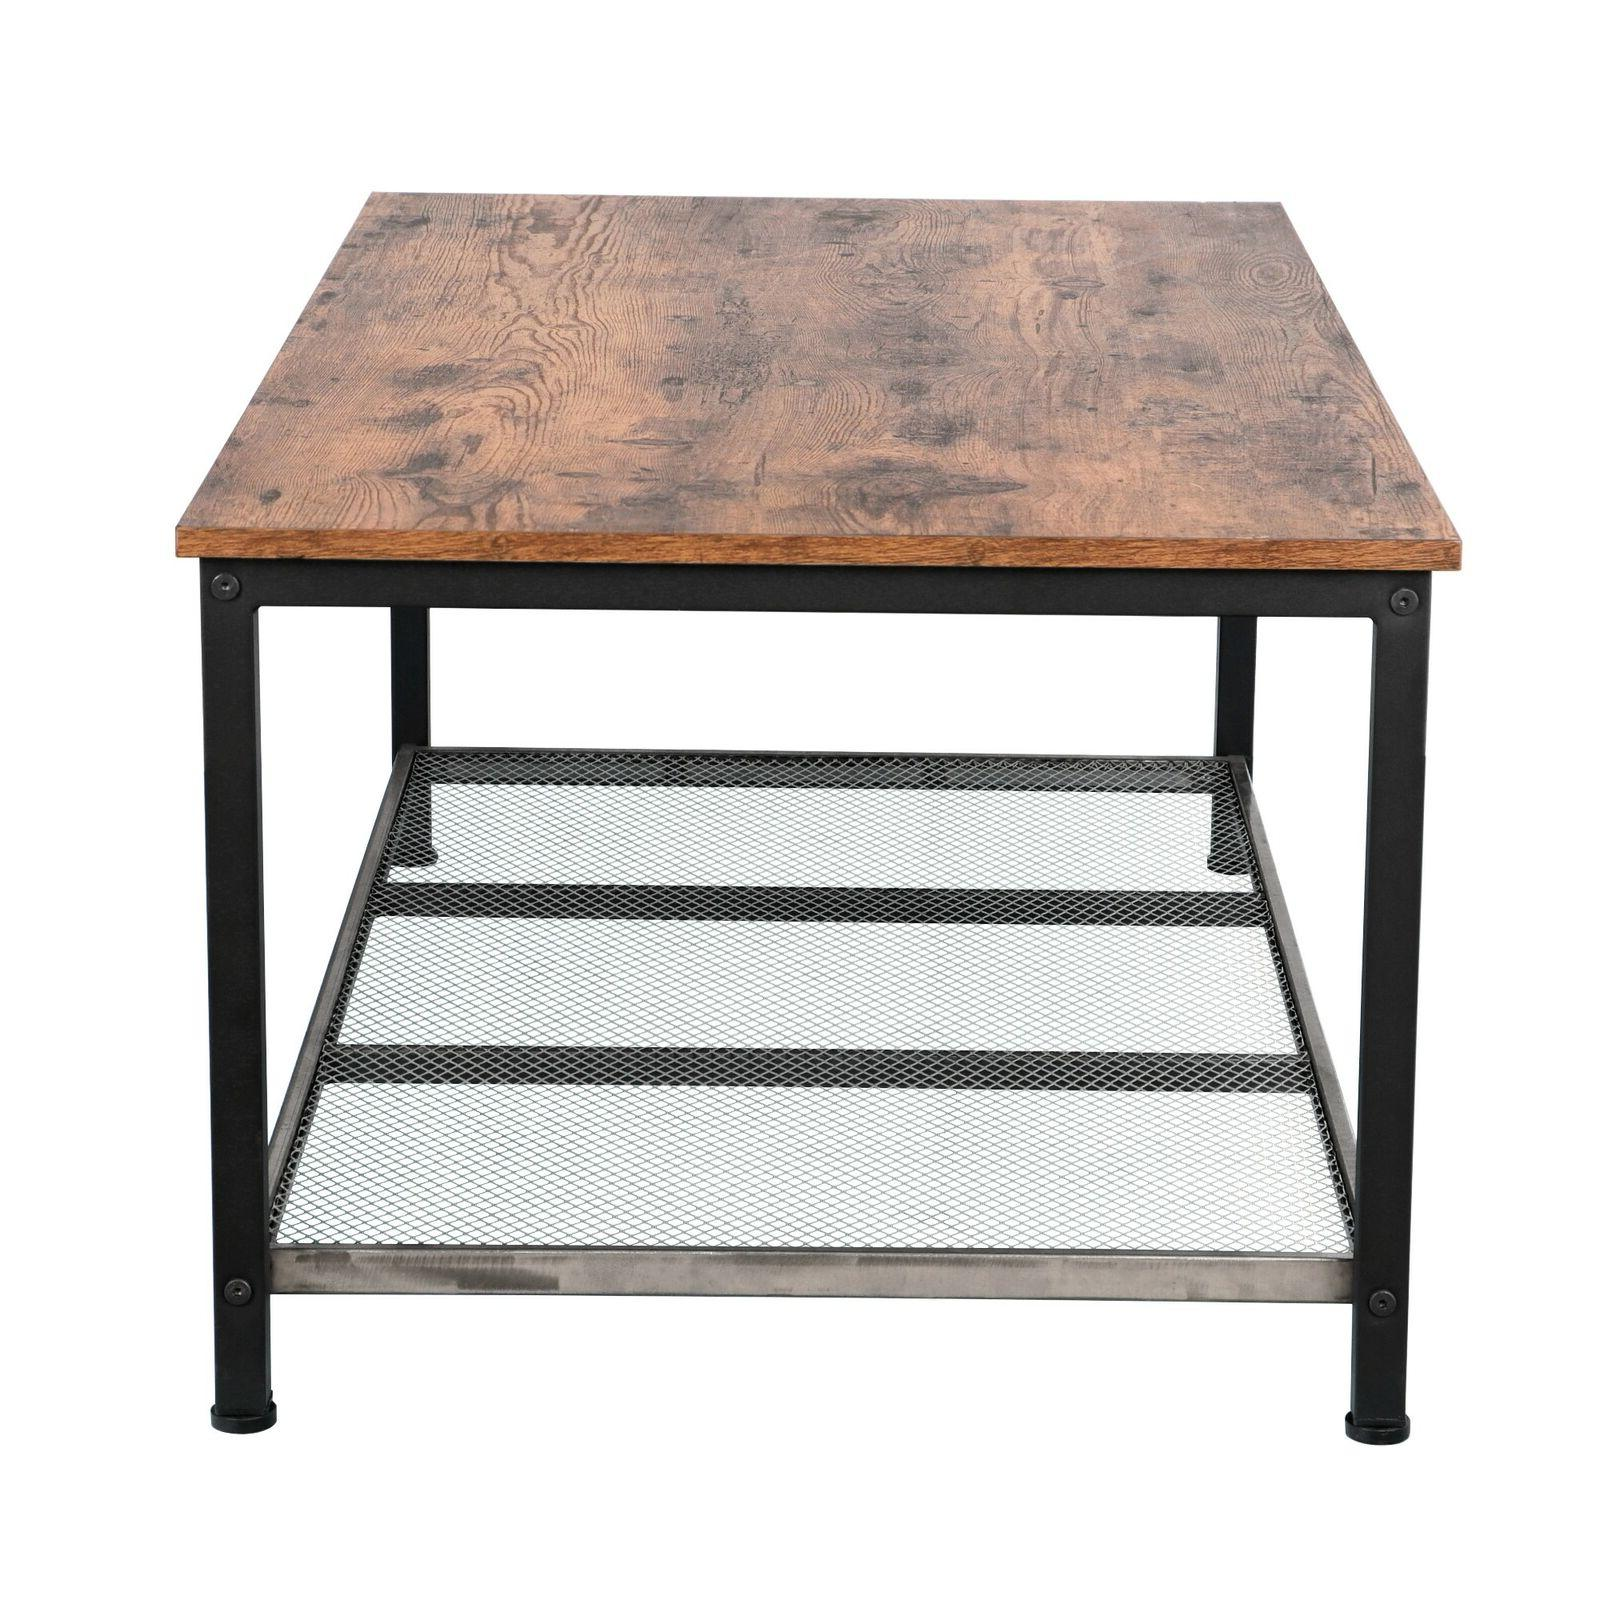 Industrial Coffee Table Storage Shelf For Room Look